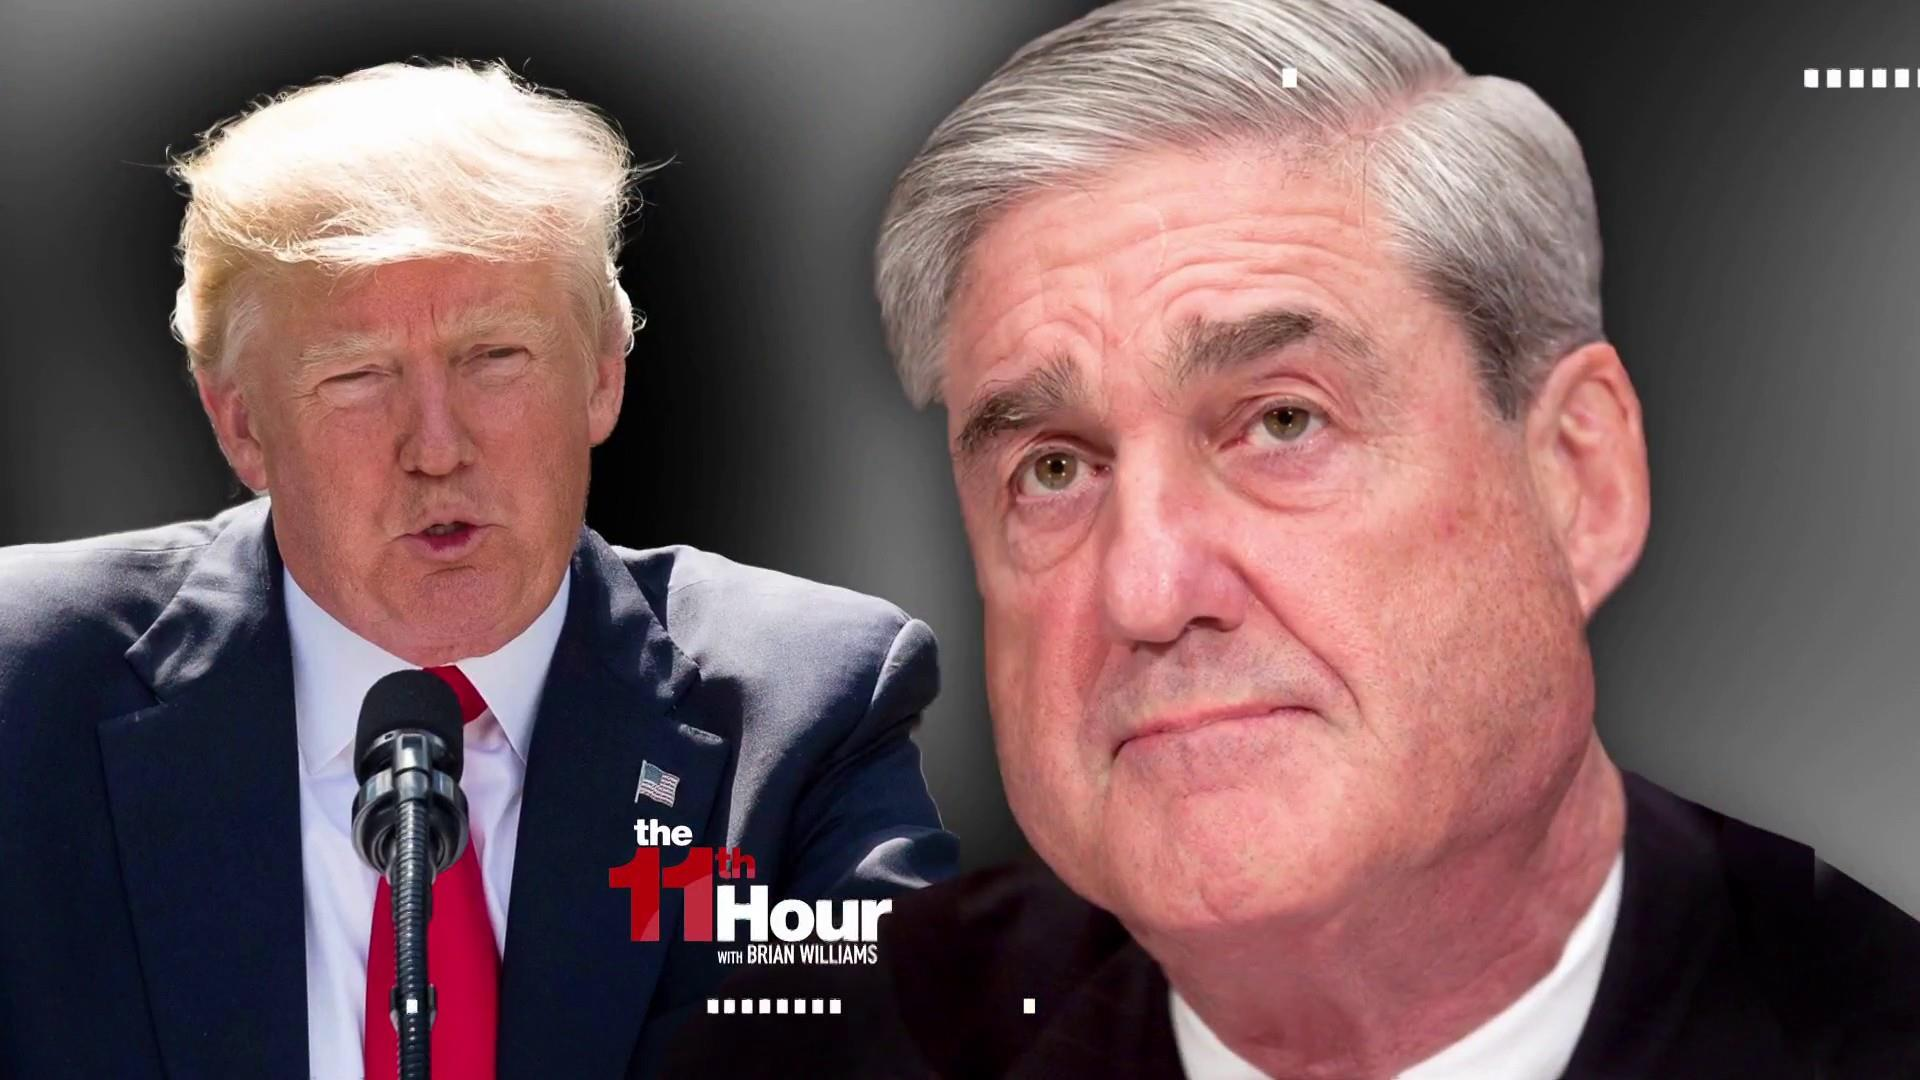 Trump: Absolutely, I'll talk to Mueller under oath